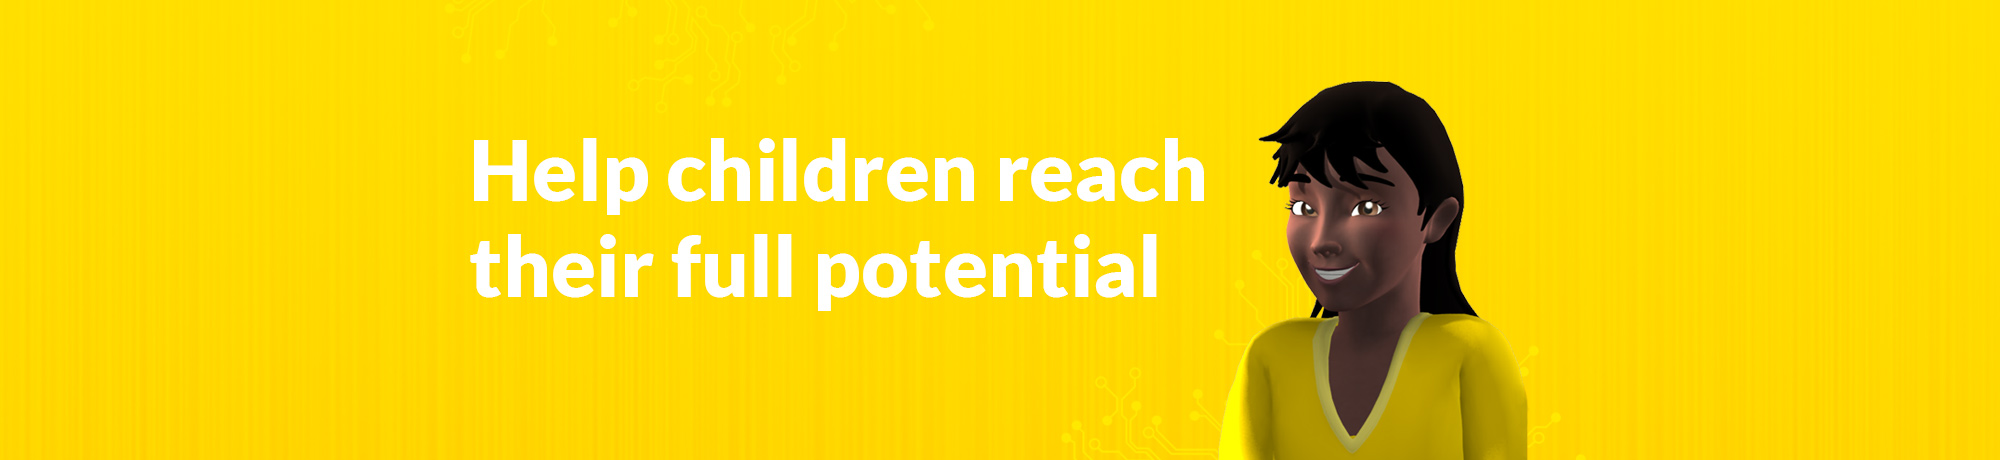 SAS helps children reach their potential